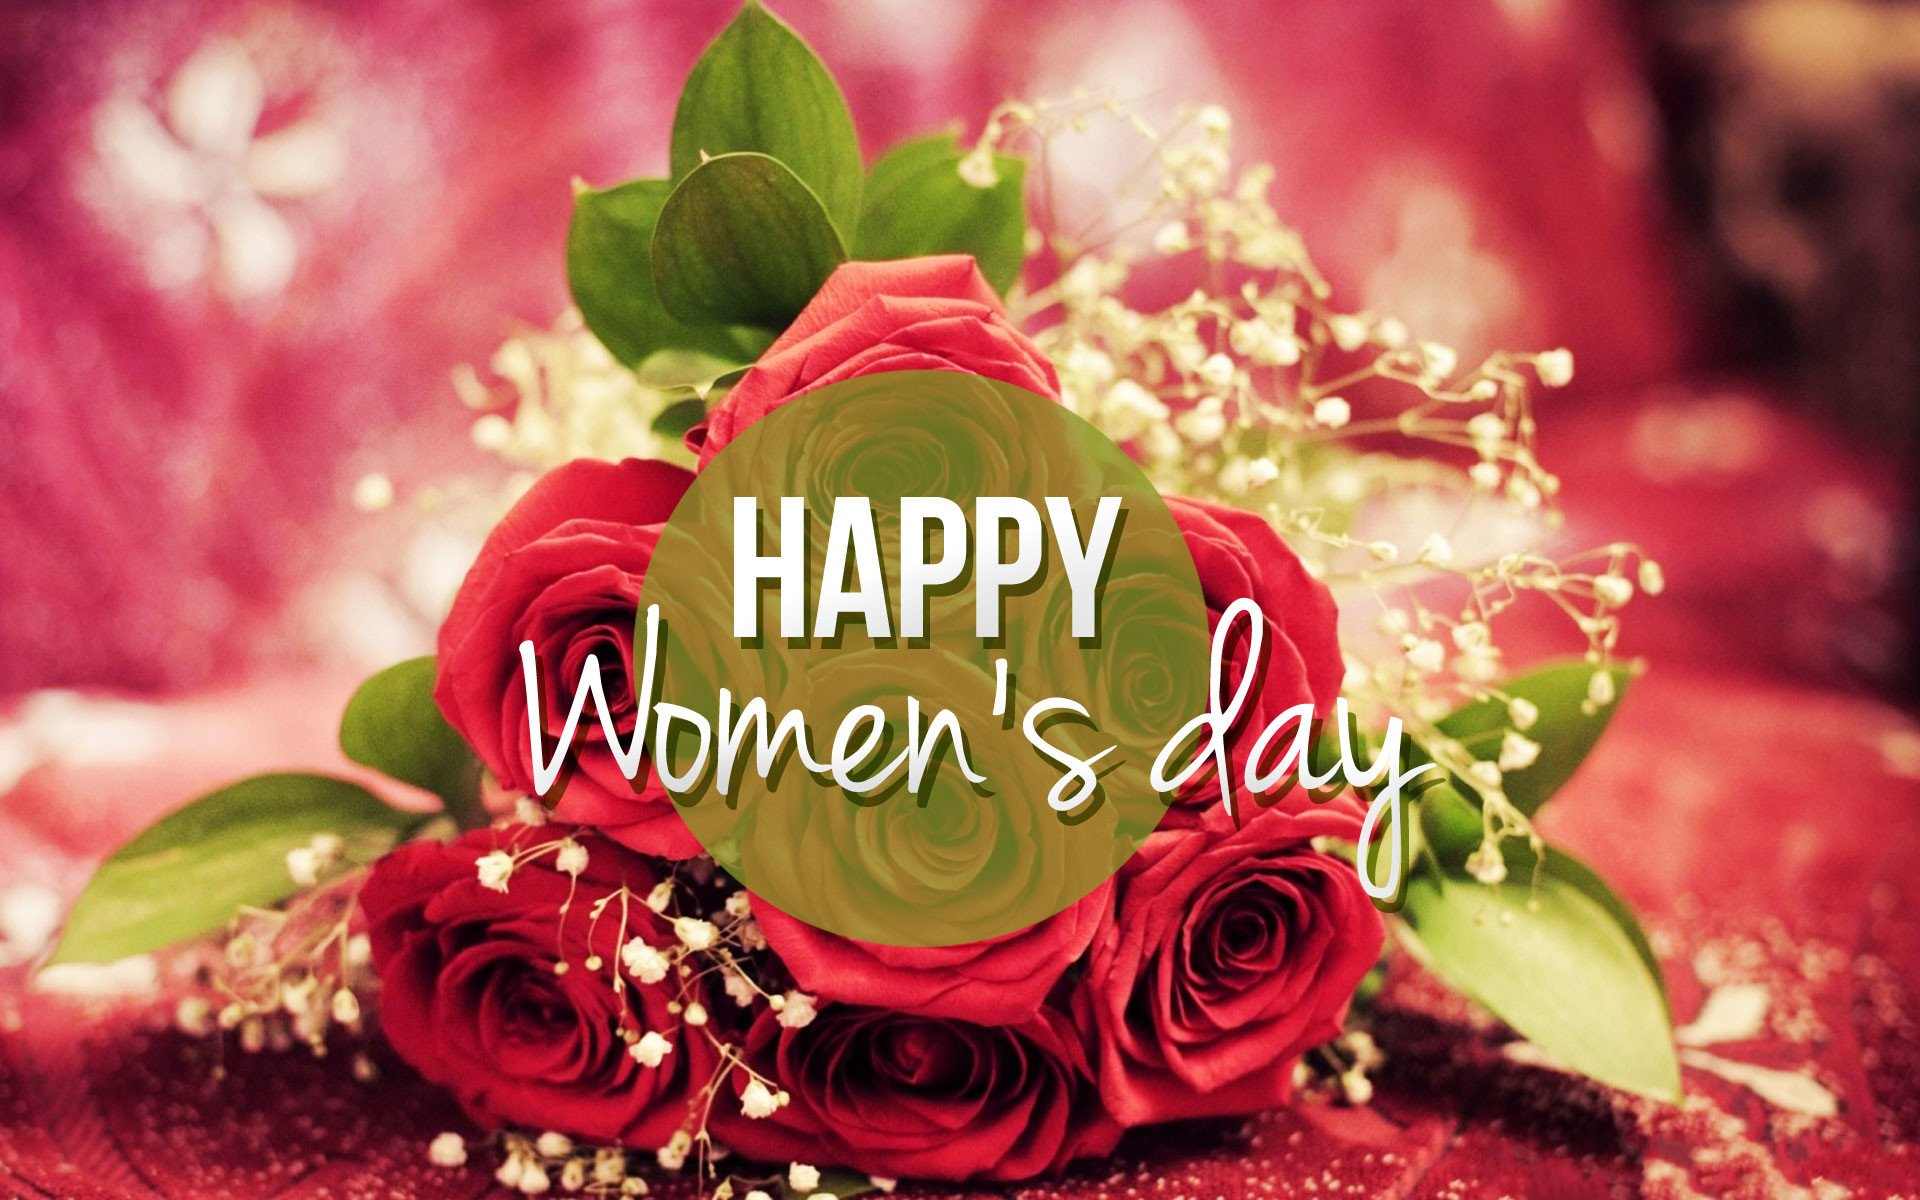 Holiday - Women's Day  Statement Bouquet Rose Flower Wallpaper